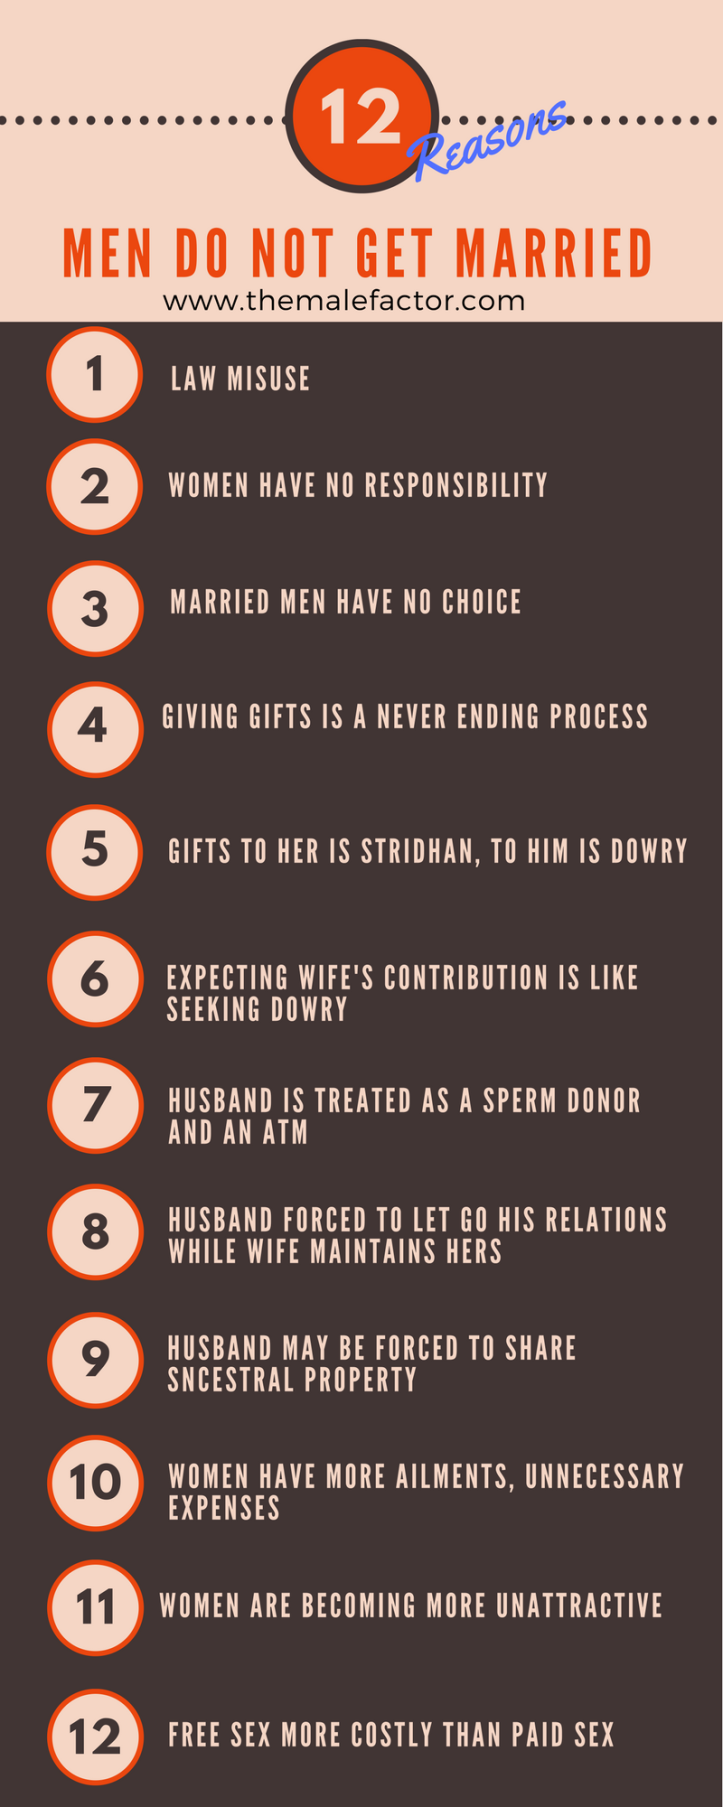 12 reasons men don't get married